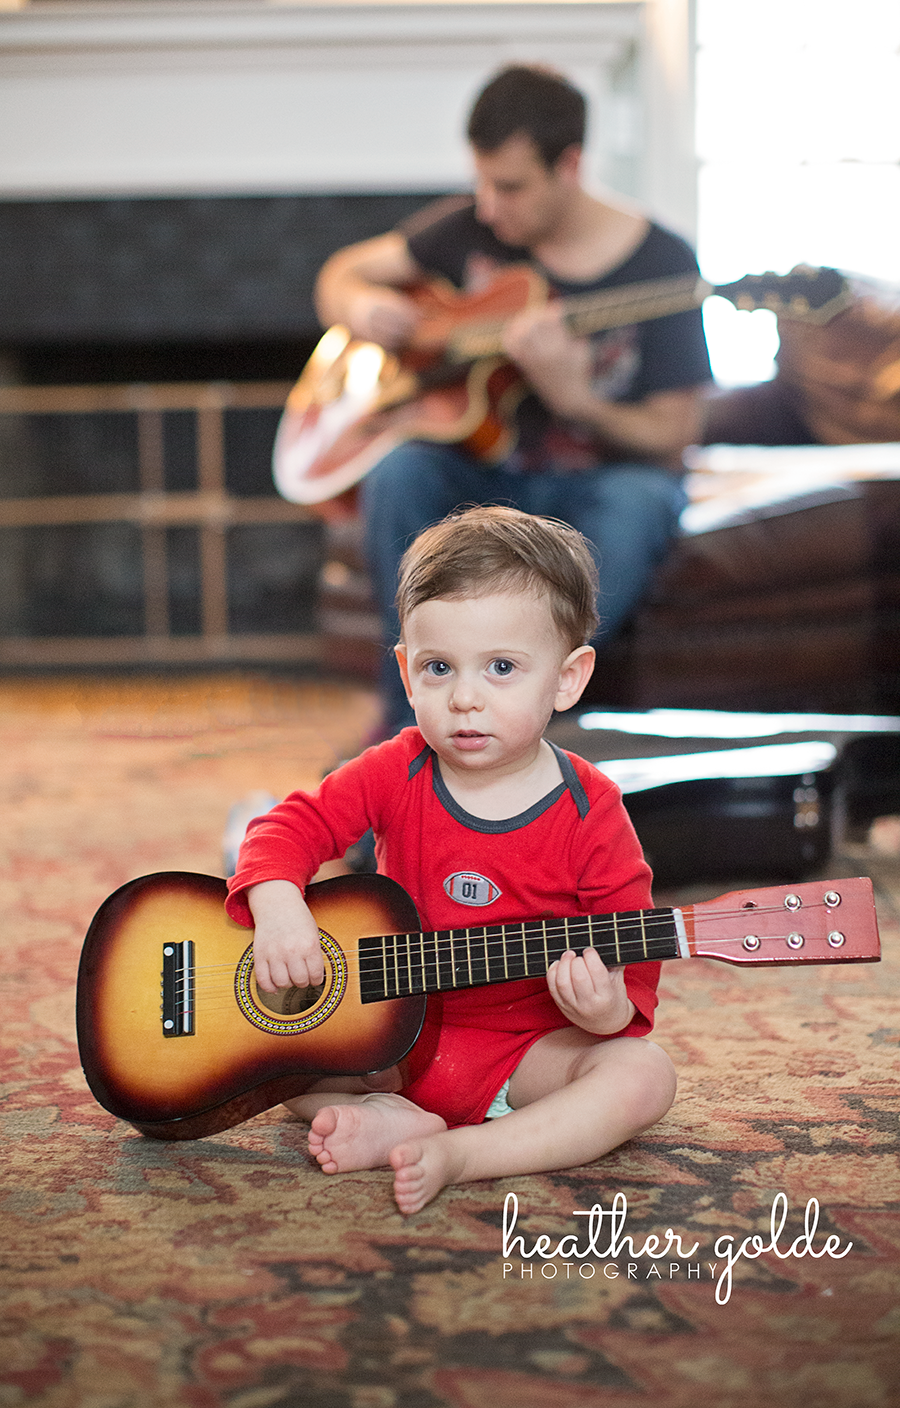 Heather Golde photography, baby playing guitar, baby and